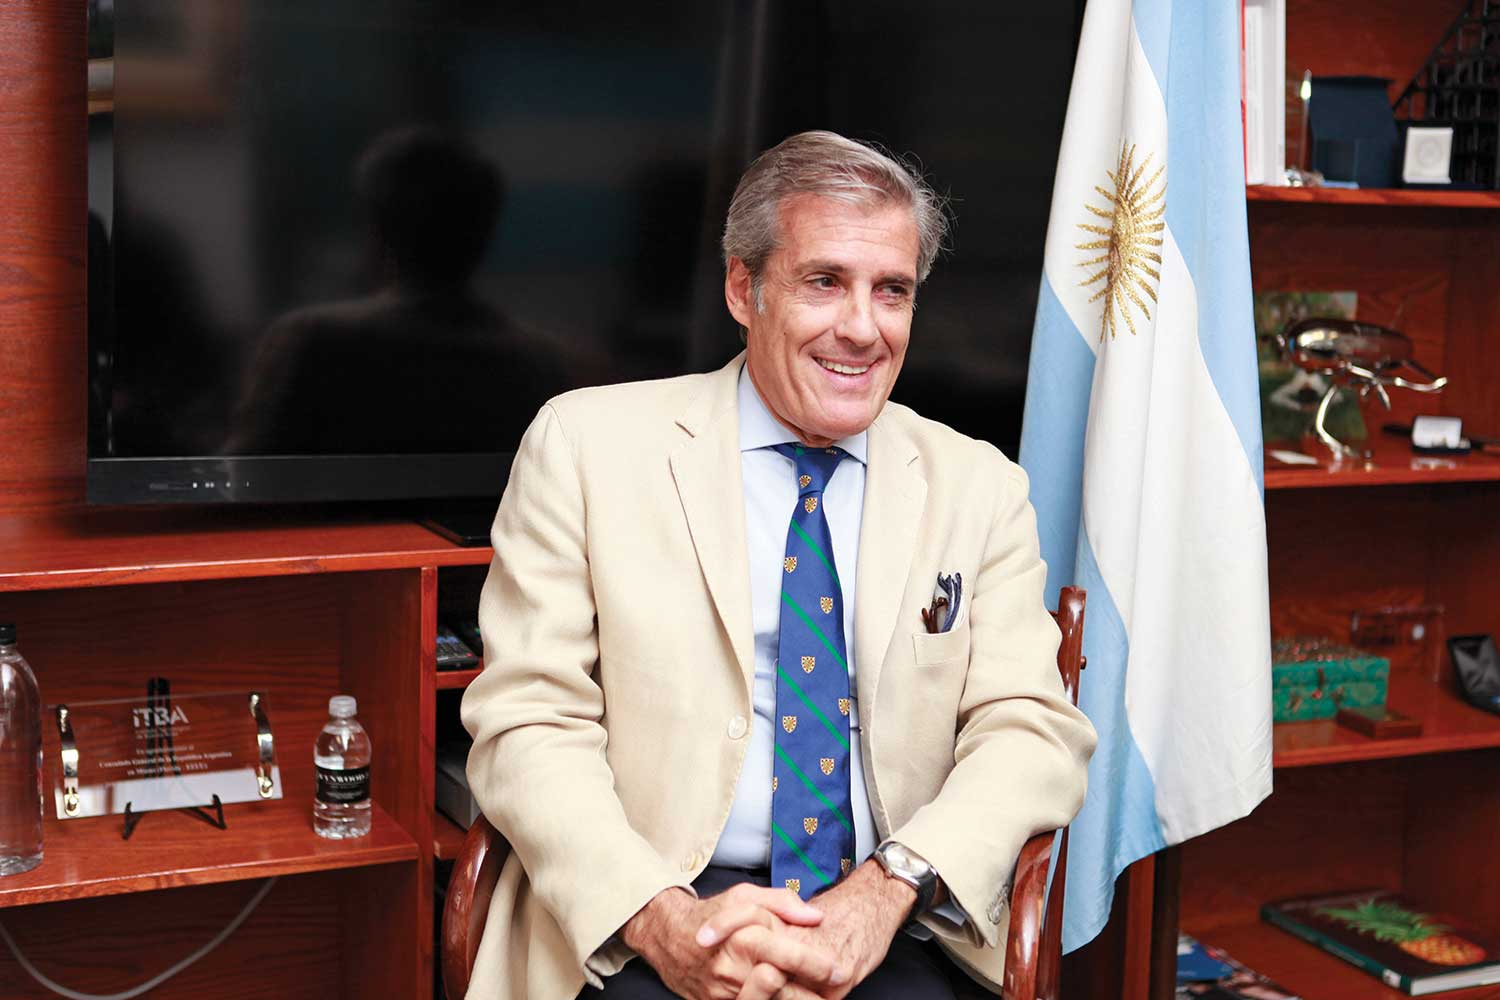 Marcelo Giusto: Consul General leads Argentina's promotion center too